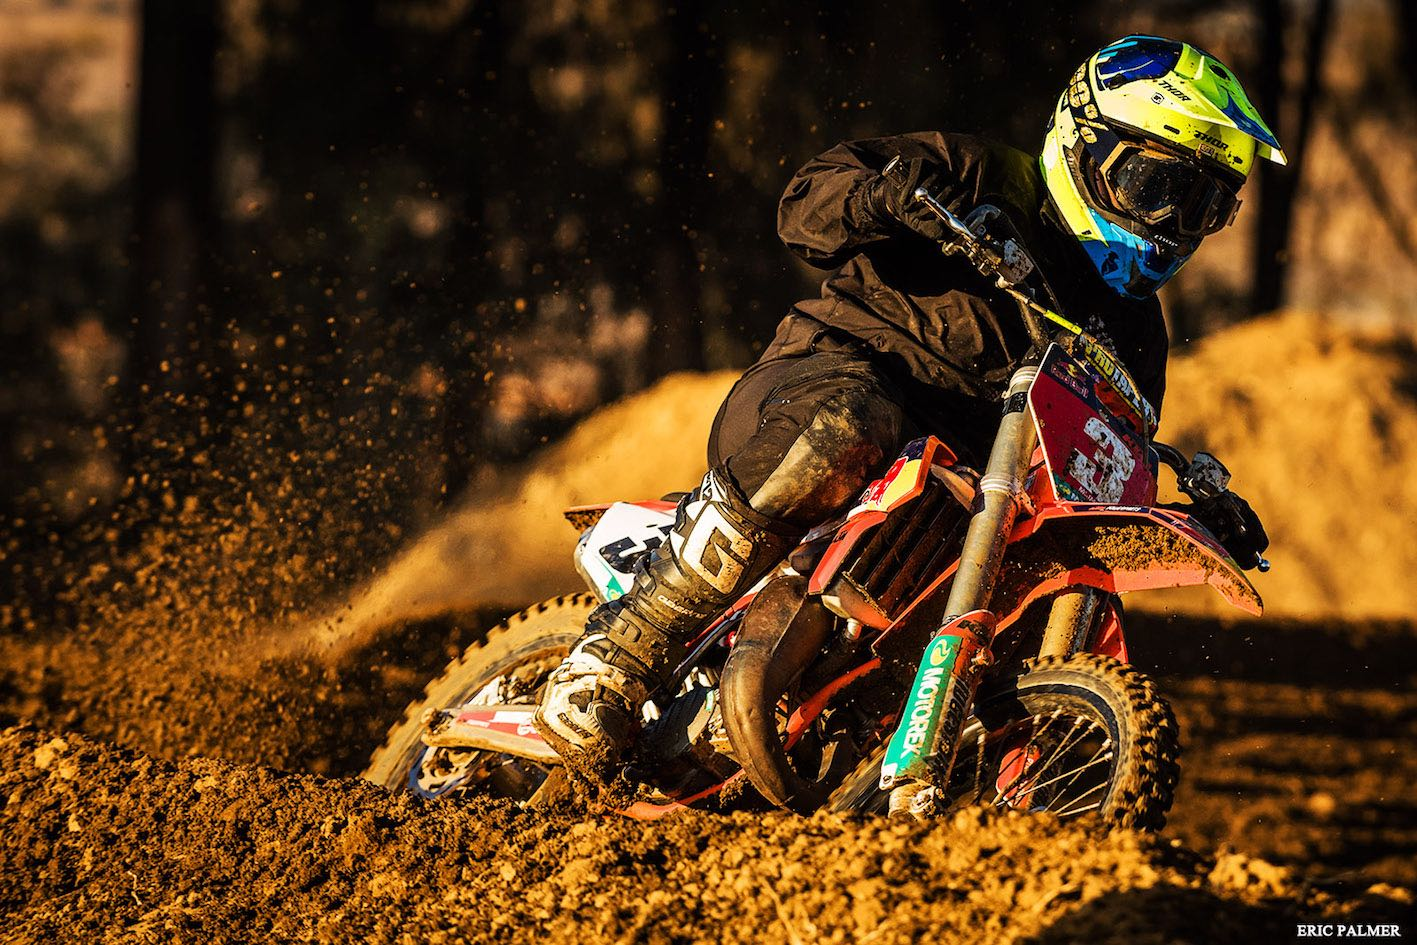 Jonathan Mlimi taking the win in the Pro Mini class at the MX Nationals